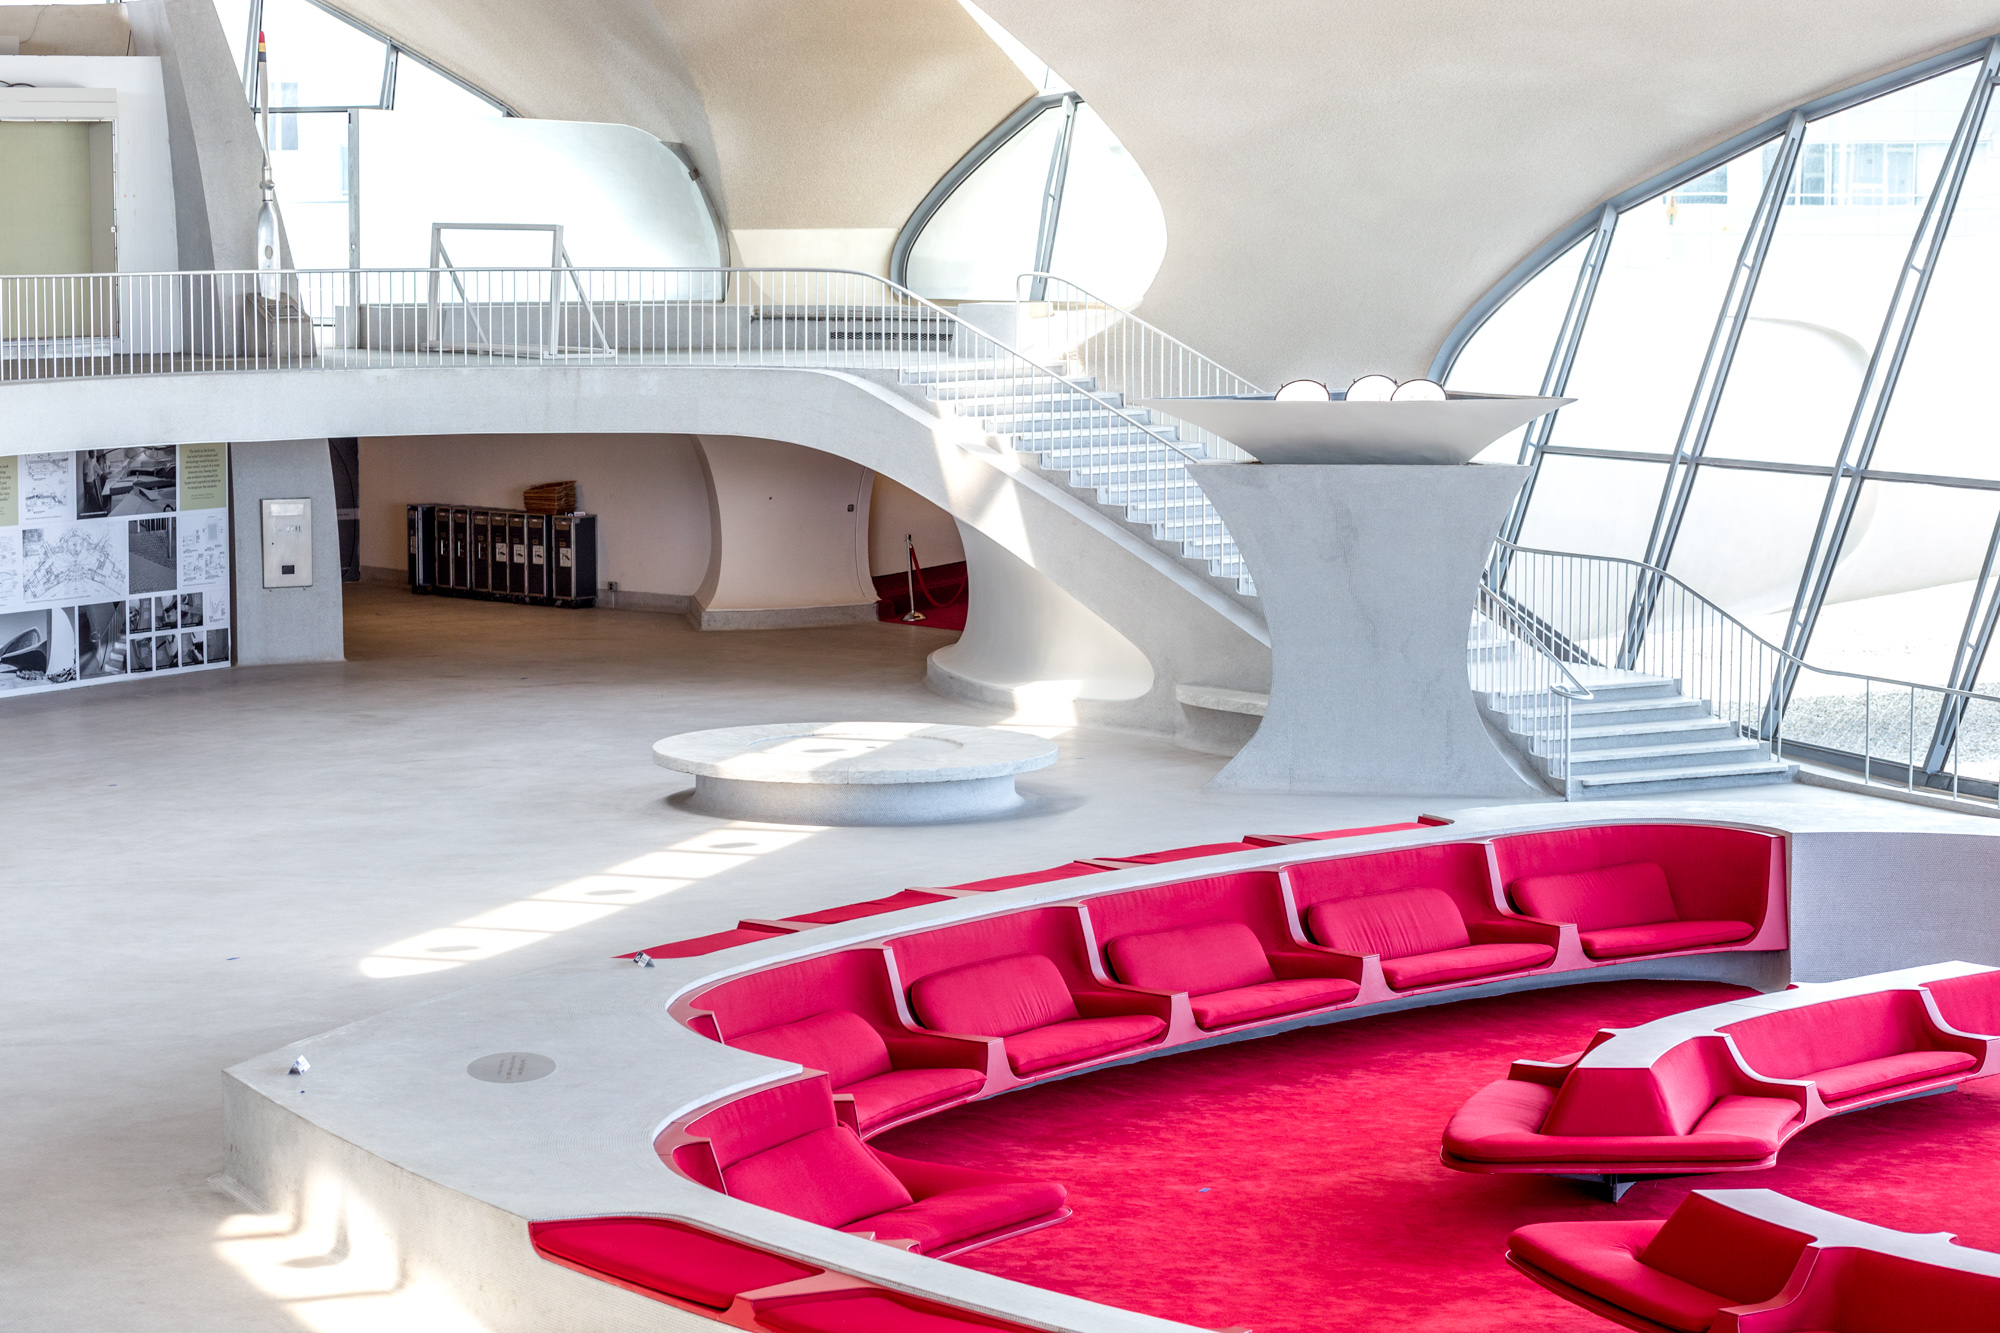 Twa terminal hotel celebrates groundbreaking with a new for Hotel at jfk airport terminal